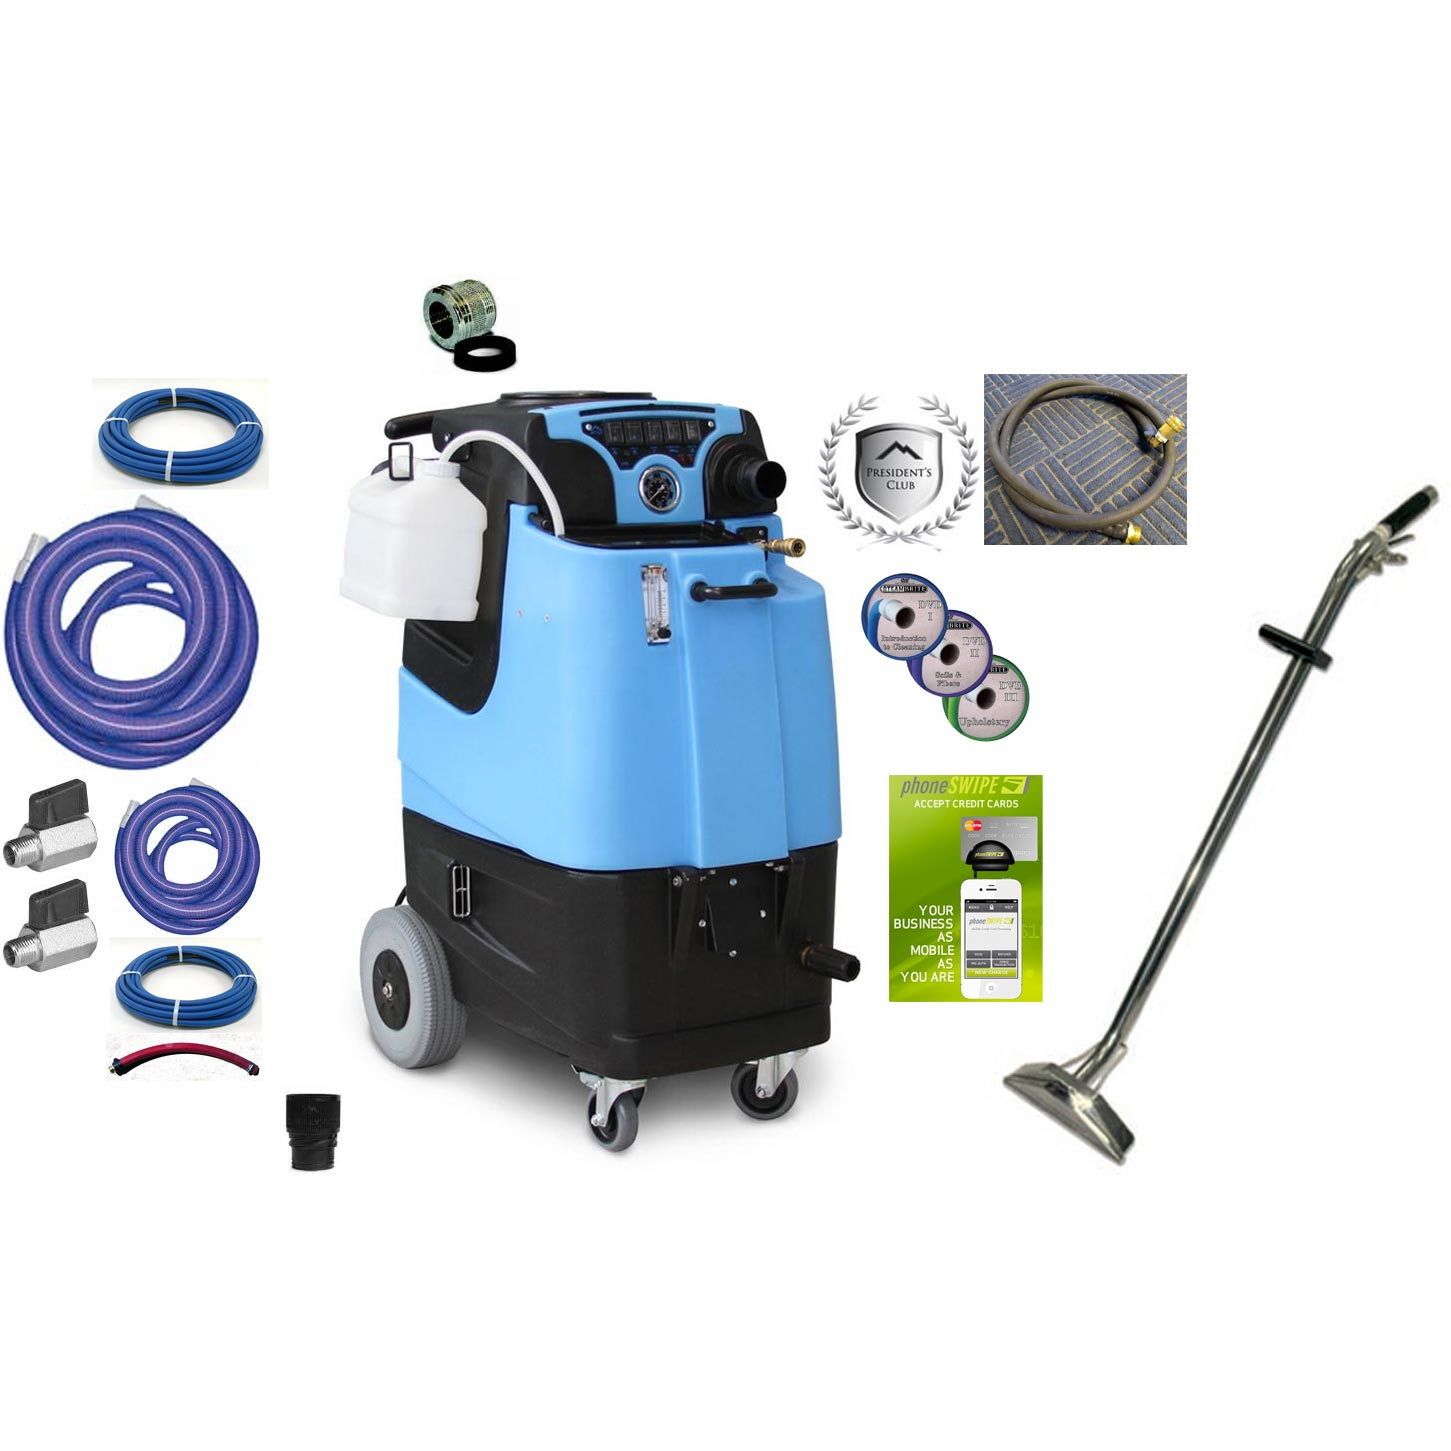 Mytee LTD3 Starter Package Speedster Carpet Cleaning Machine 12Gal 500psi HEATED Dual 3 Stage Vacs Auto Fill 3gpm Auto Dump With Accessories